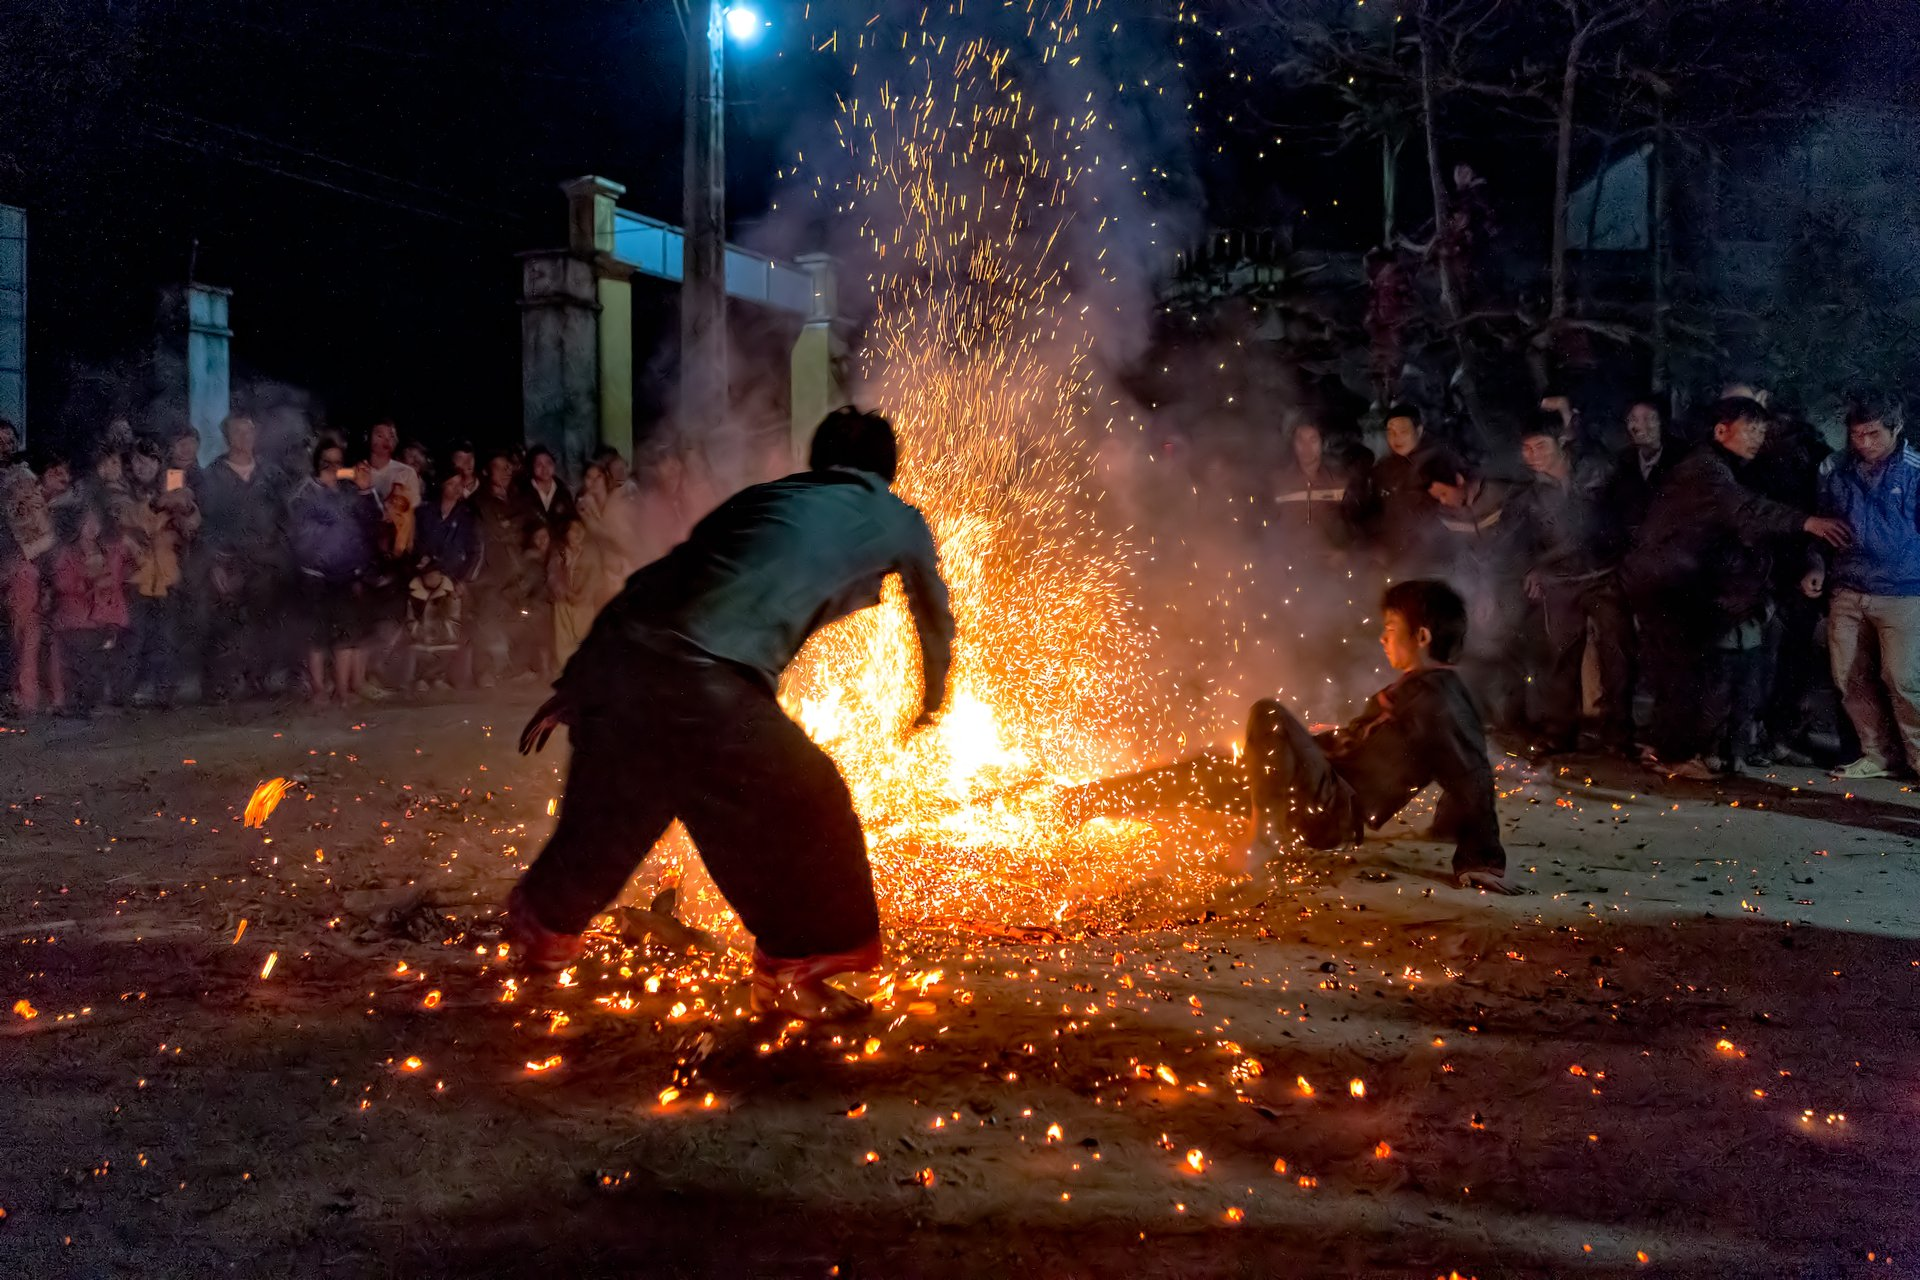 Fire Dancing Festival in Vietnam 2020 - Best Time